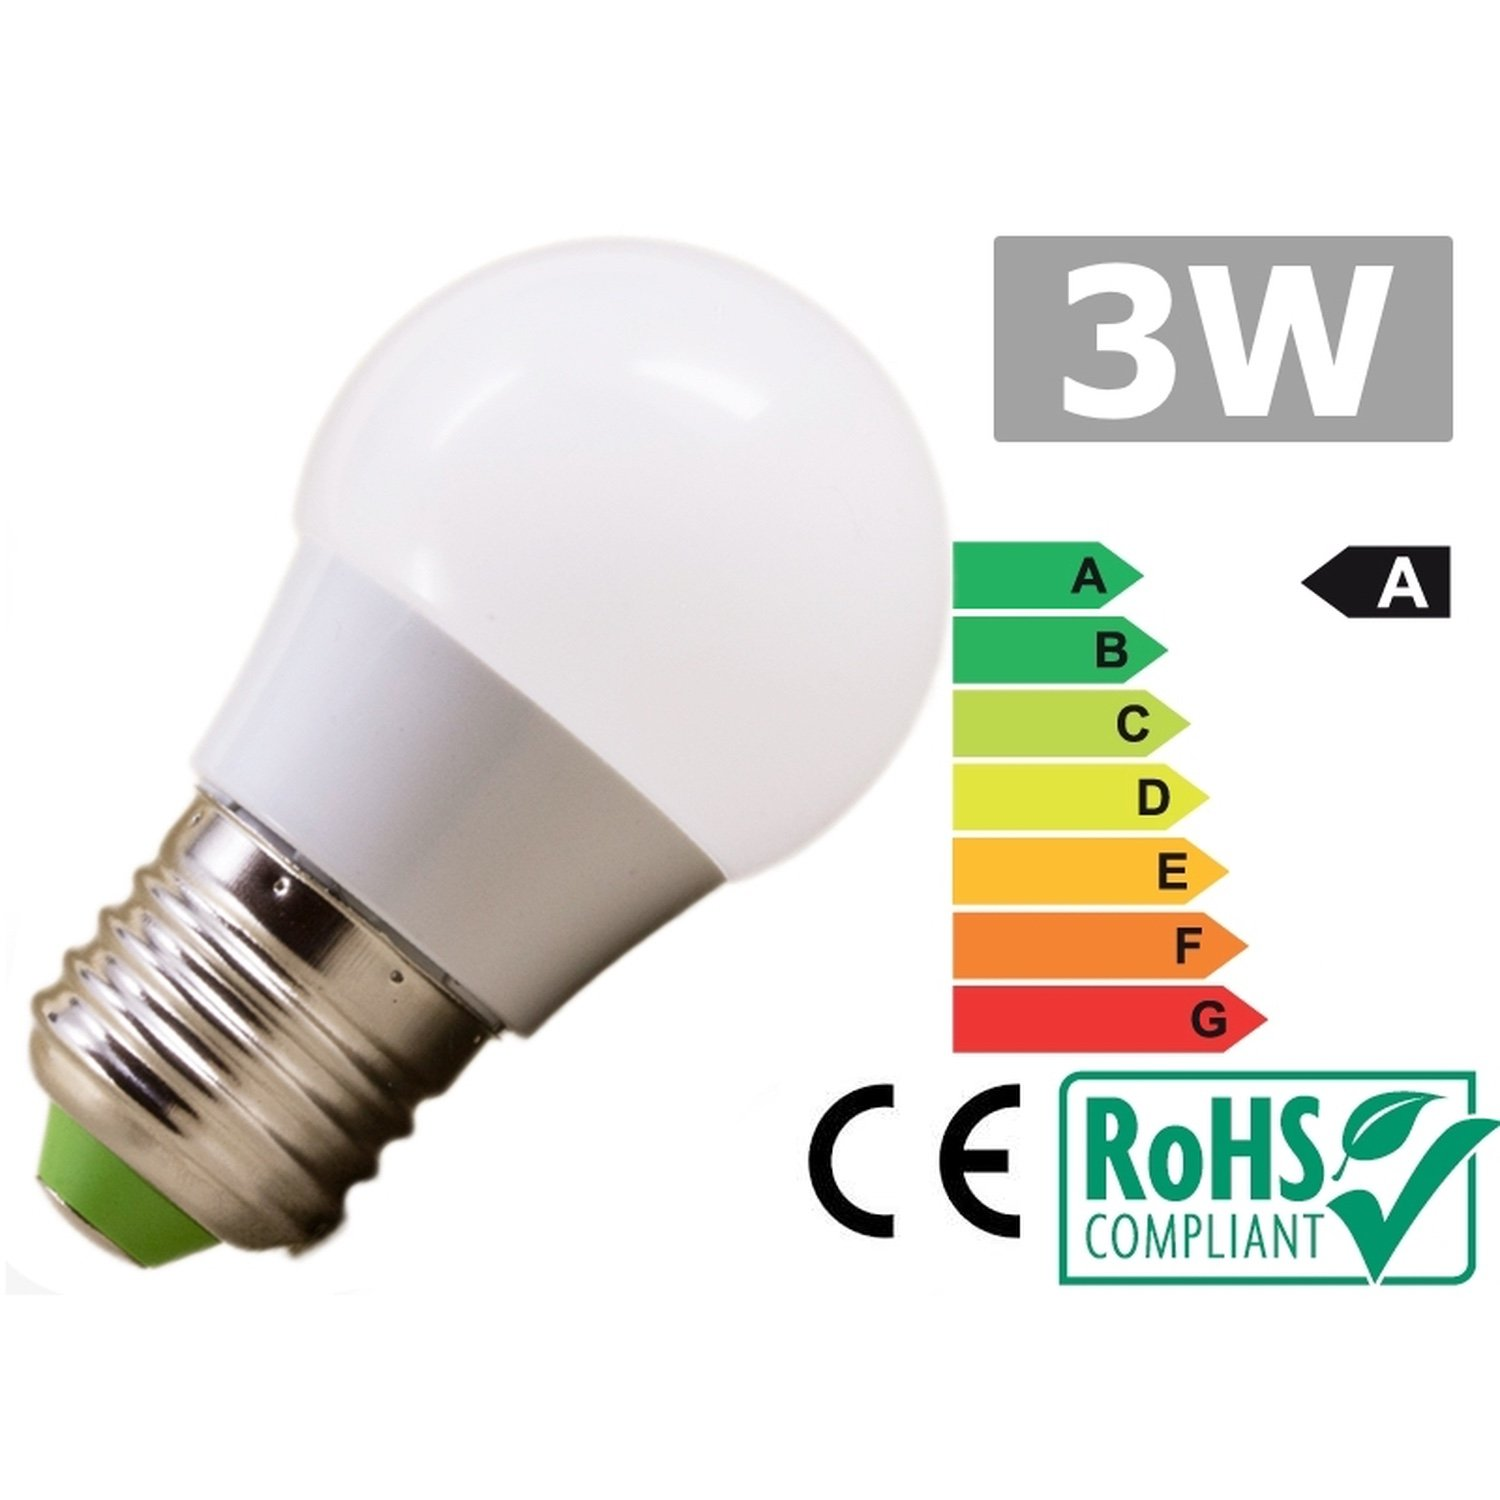 Led bulb E27 3W 6500k cold white